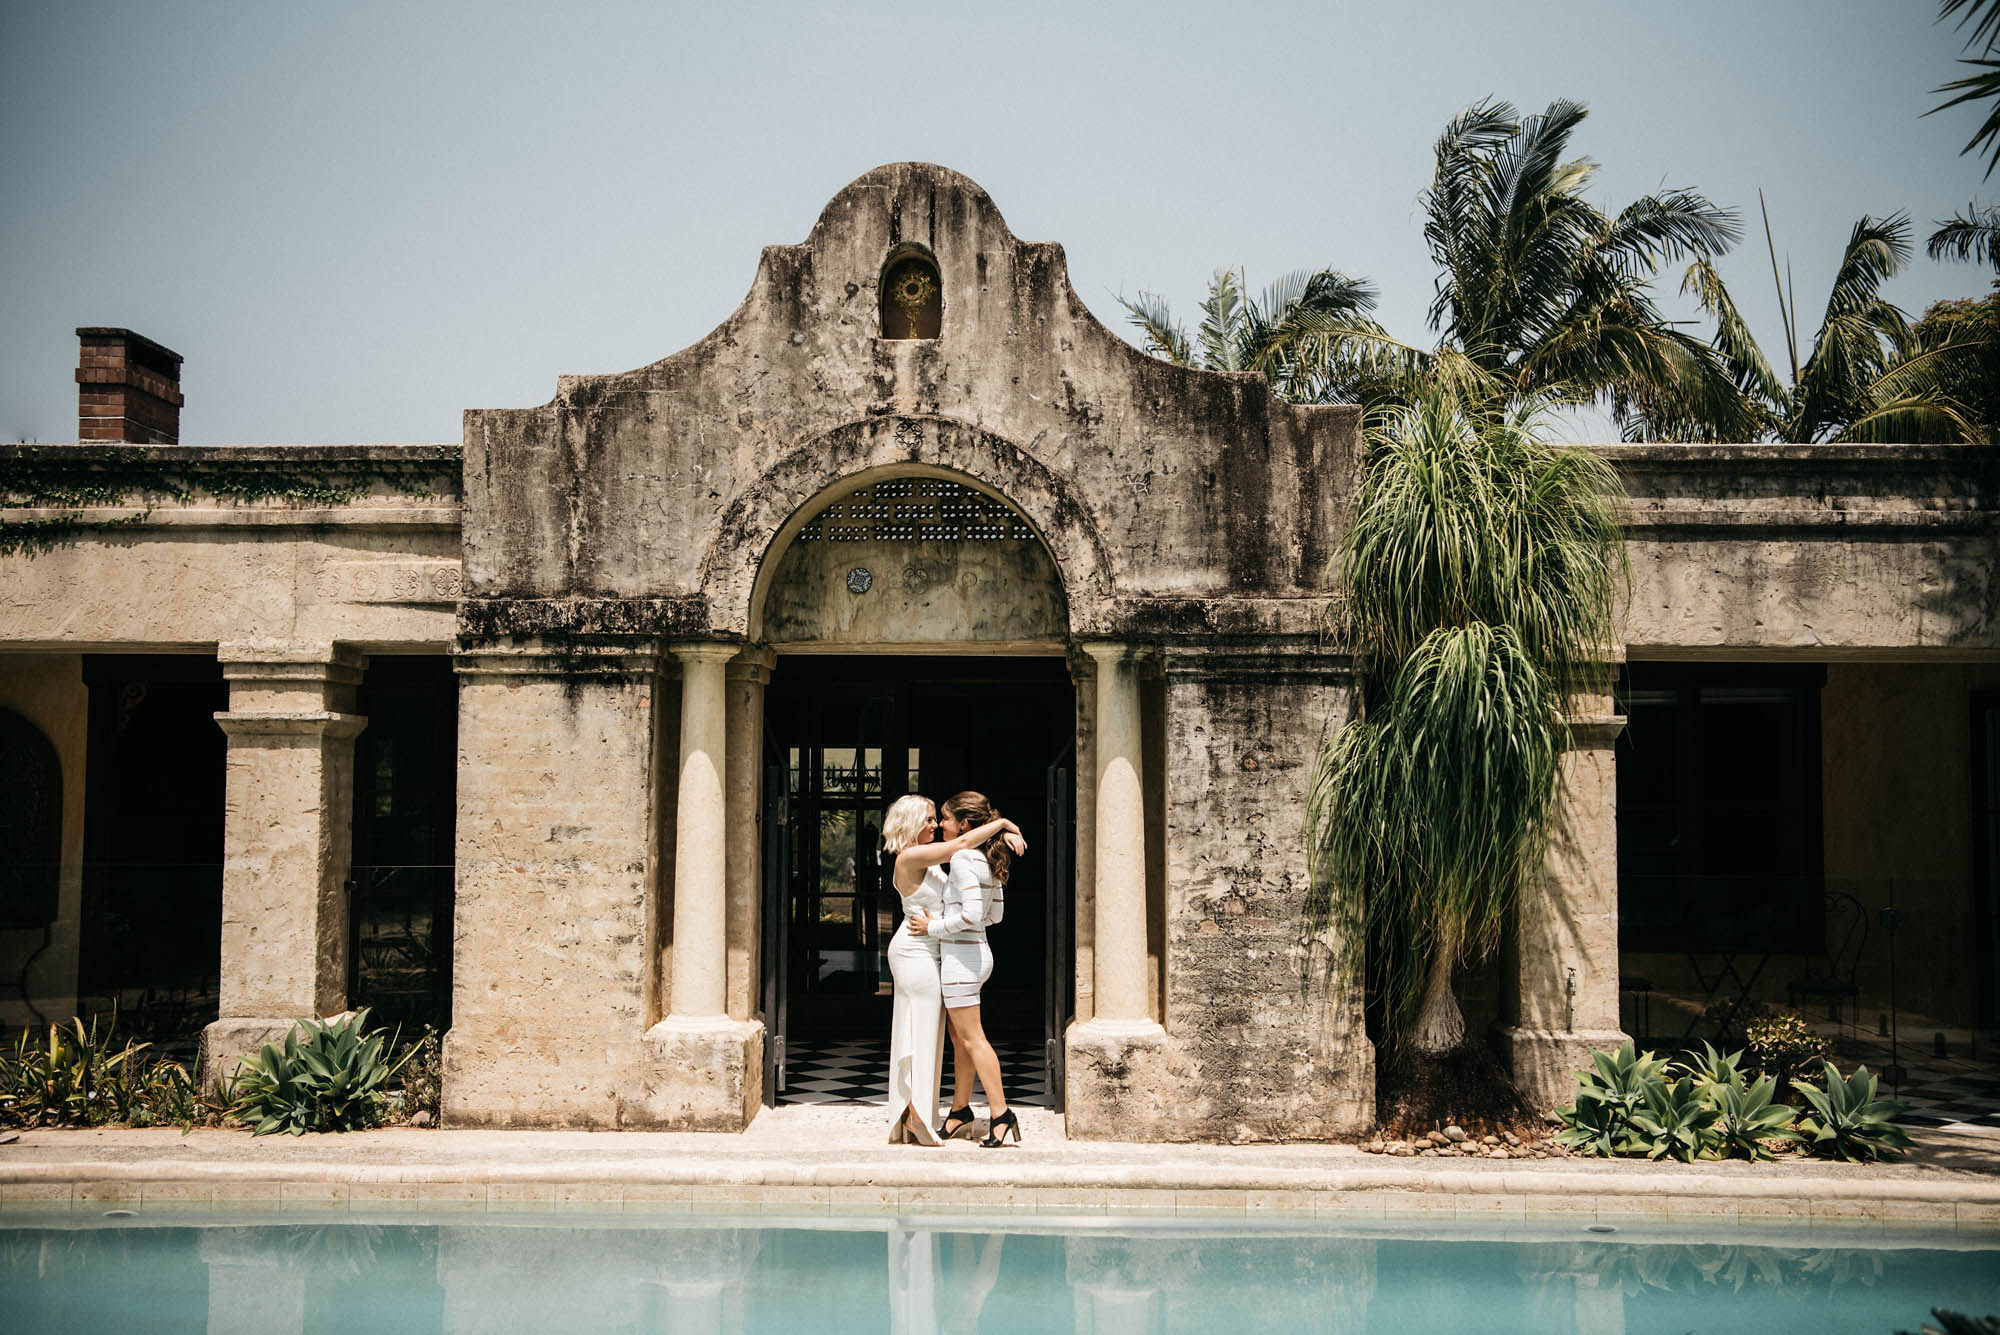 Couple holding each other with rustic concrete villa and blue pool in background.